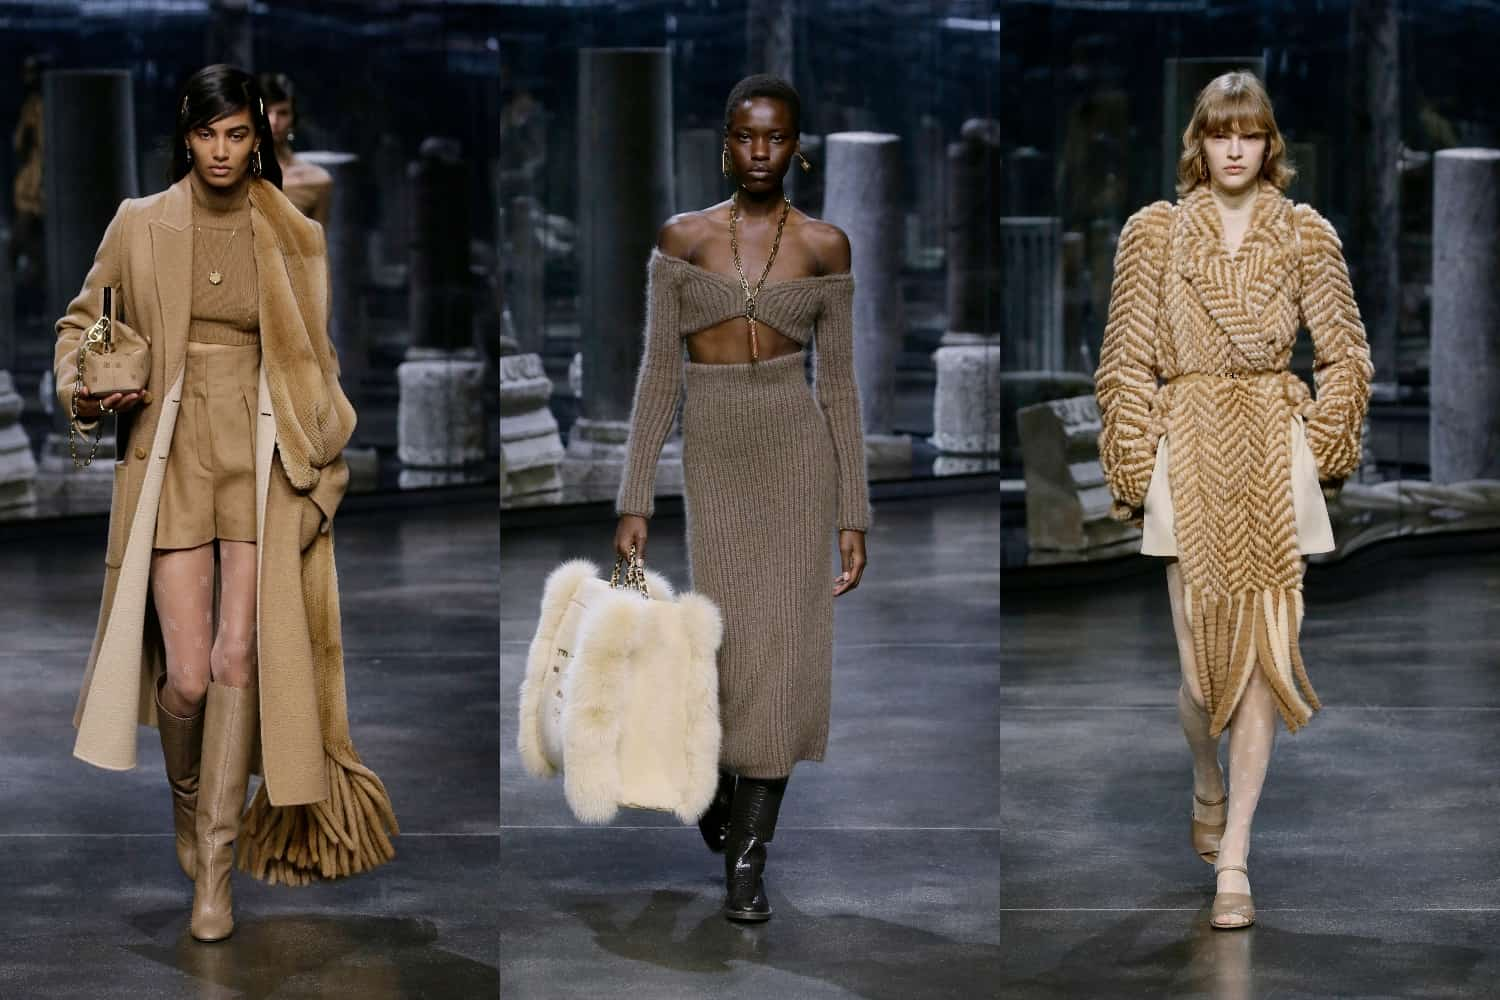 Kim Jones debuted on RTW at Fendi with a chamber to her predecessors